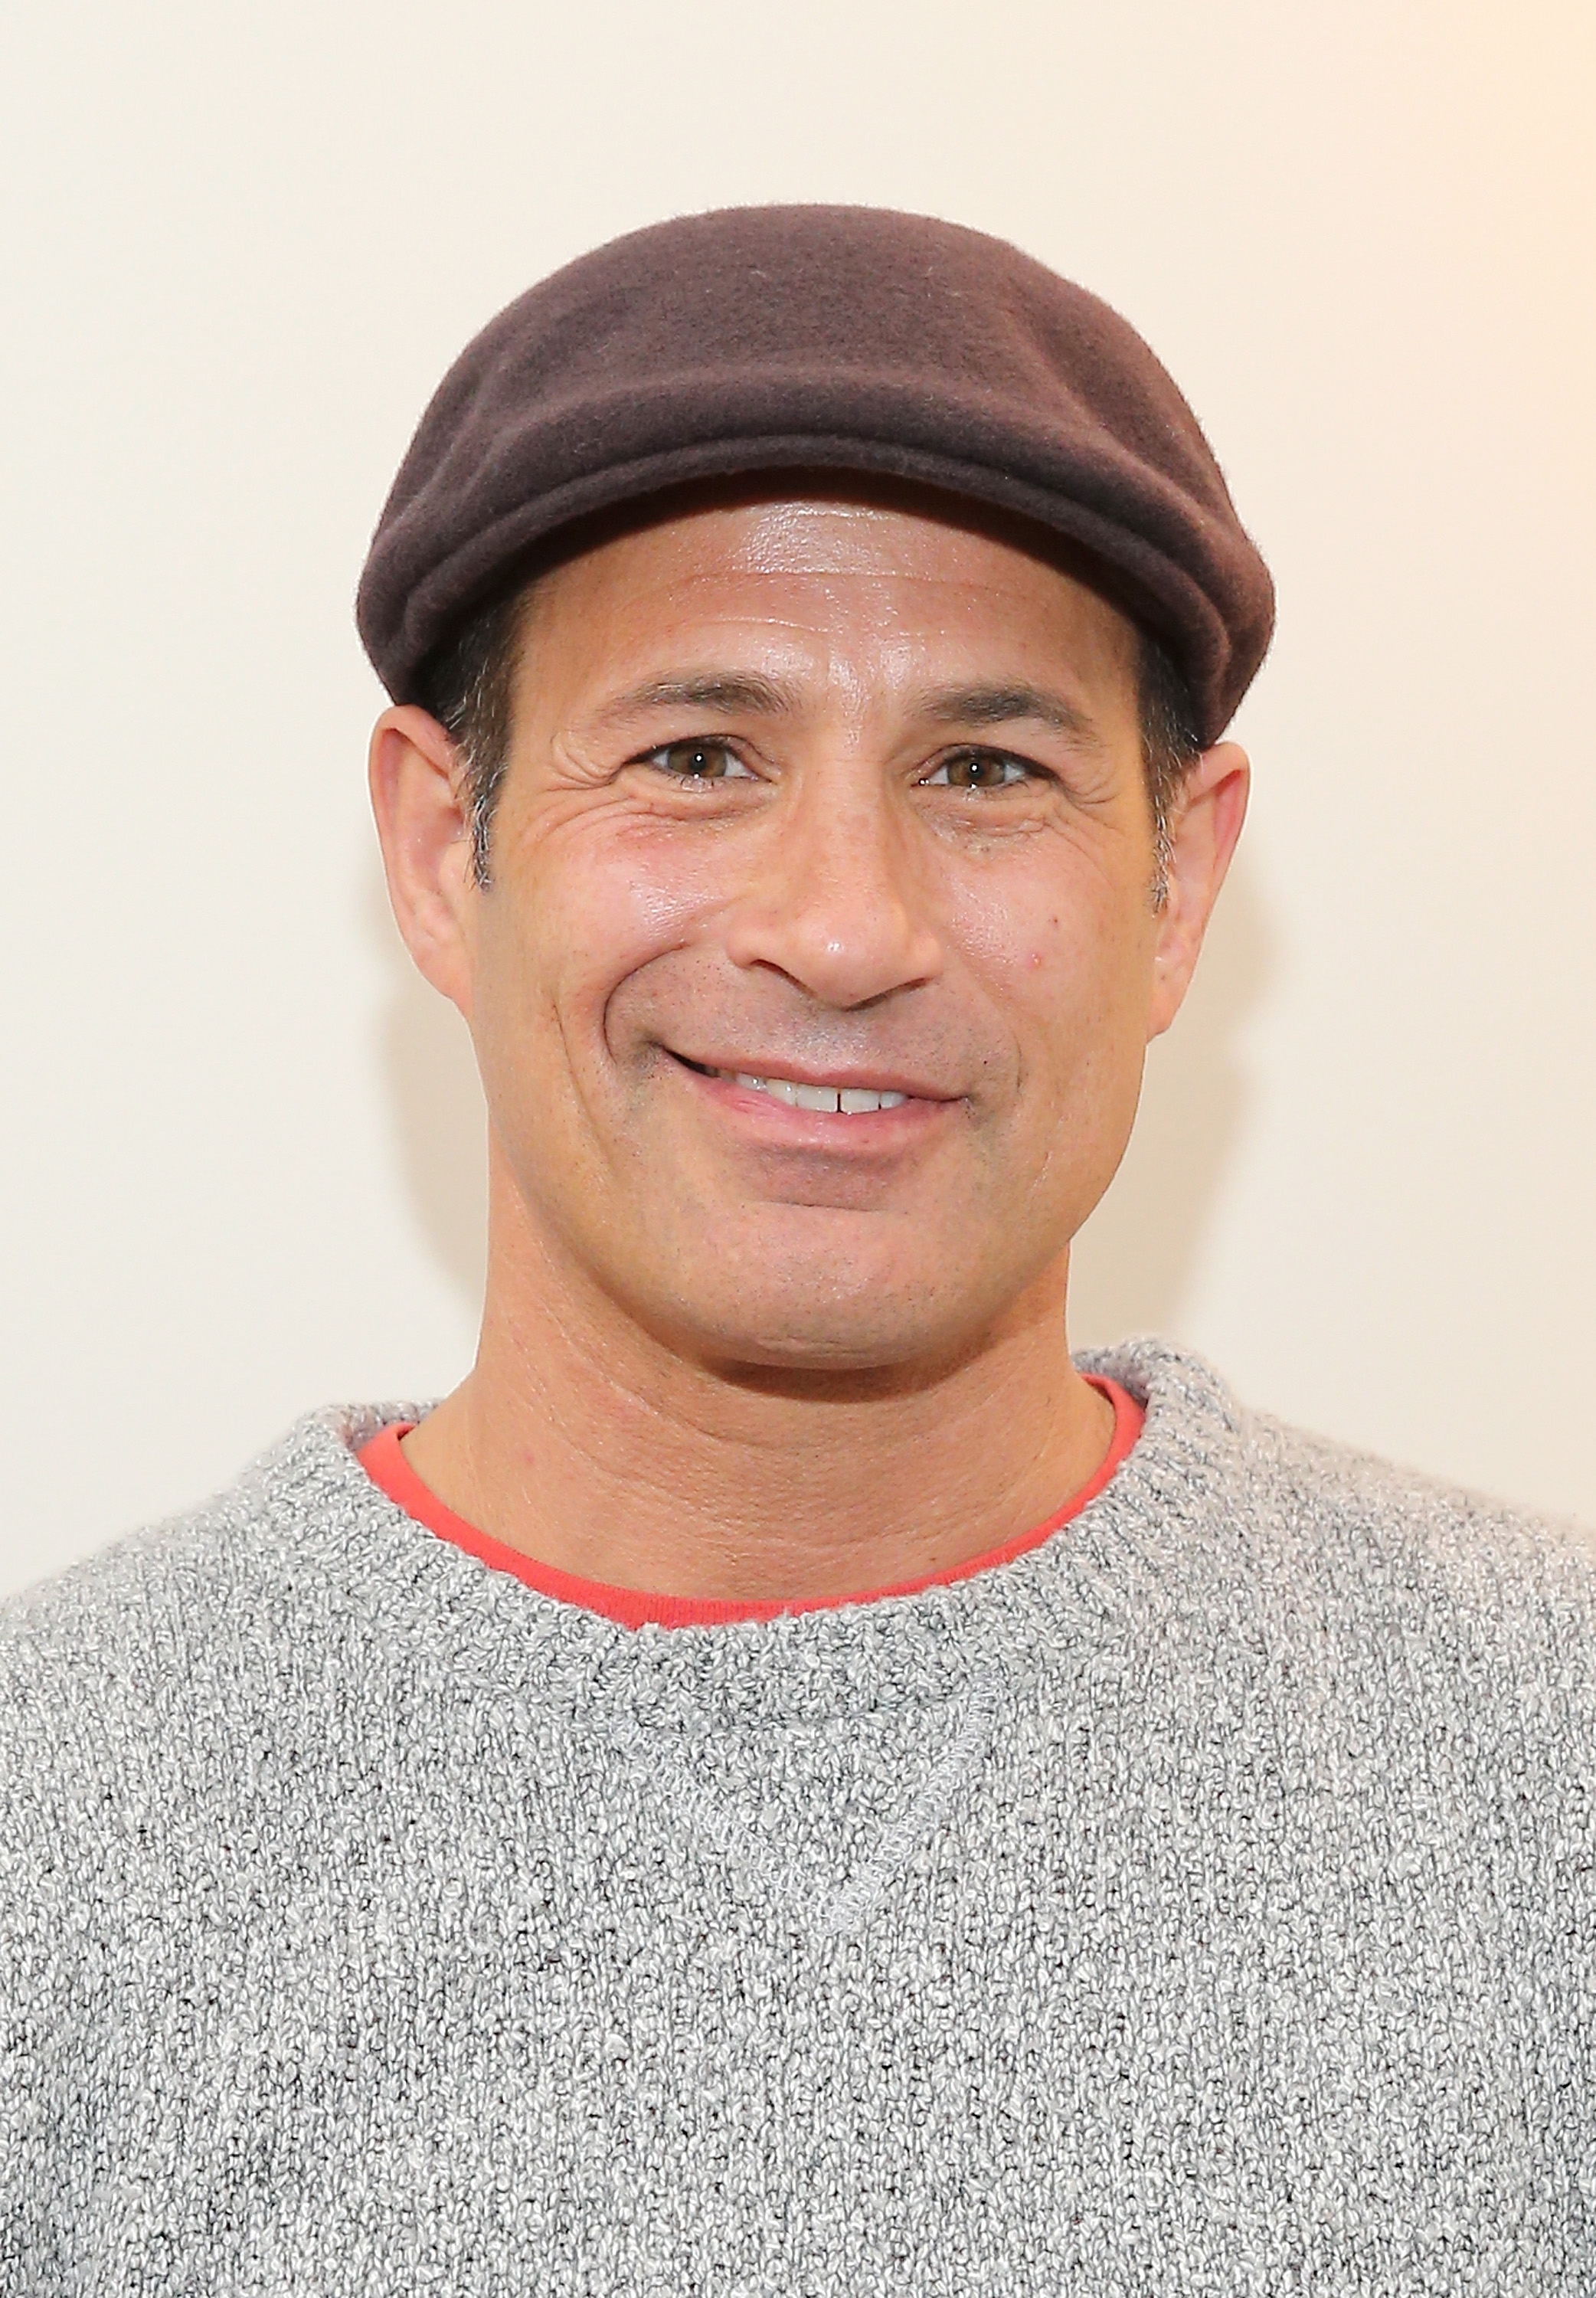 Sam Calagione at the Record Store Day 2016 Announcement at Electric Lady Studio in New York City on March 8, 2016.